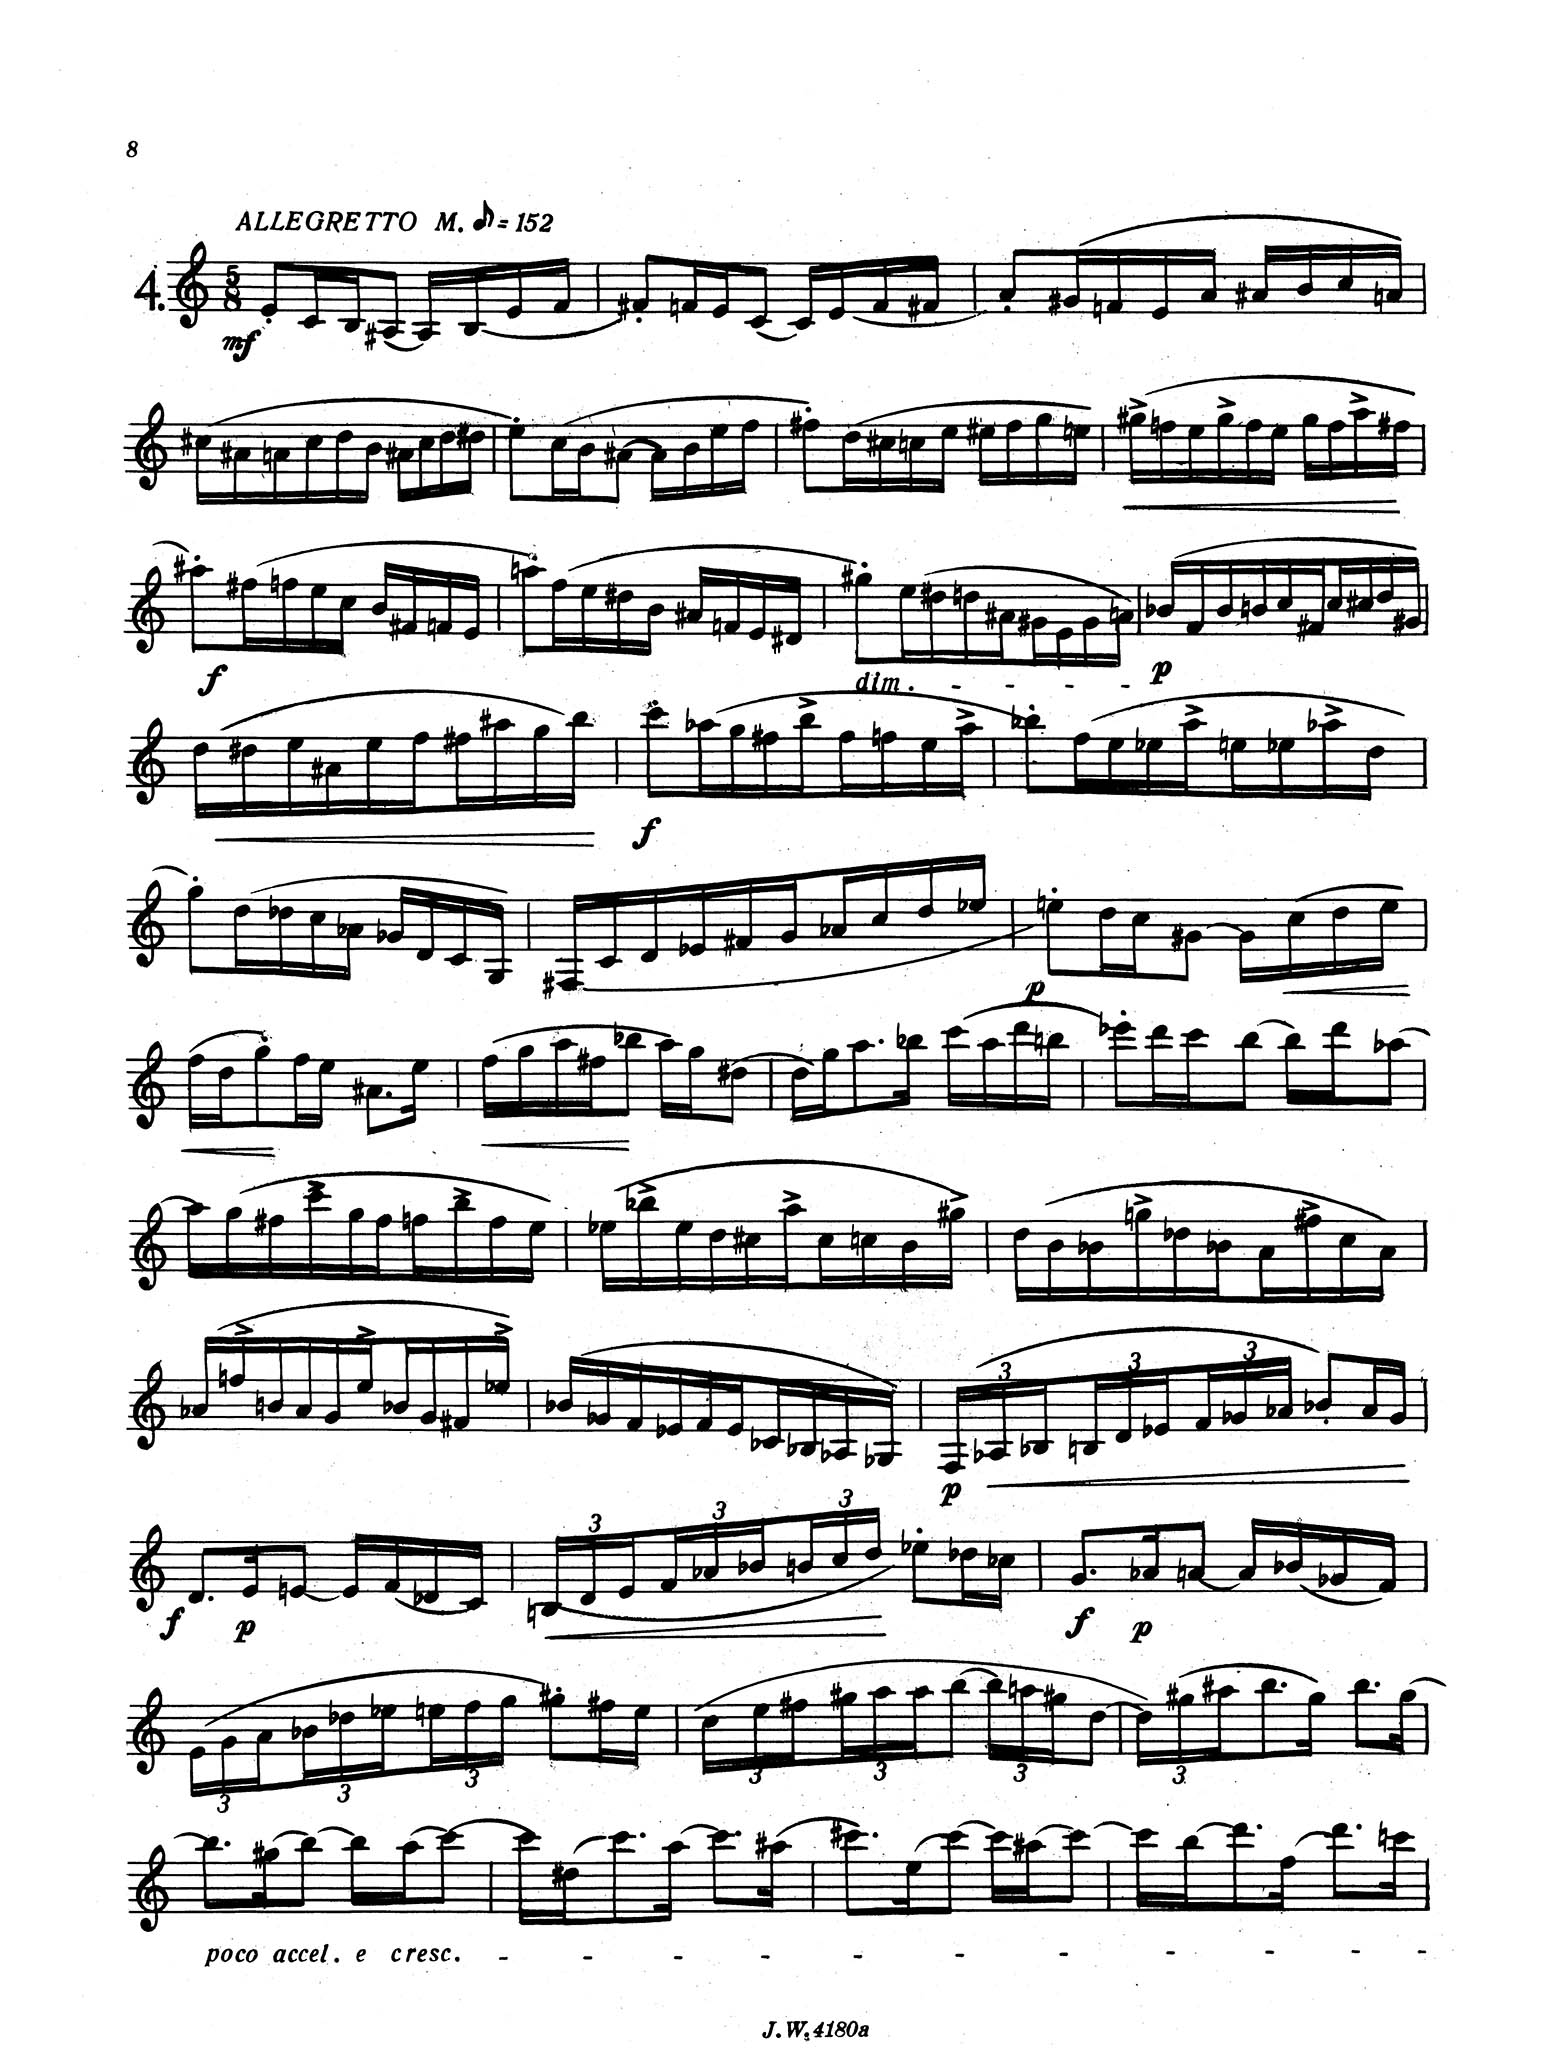 Preliminary Studies to The Accomplished Clarinettist, Book 2 Page 8